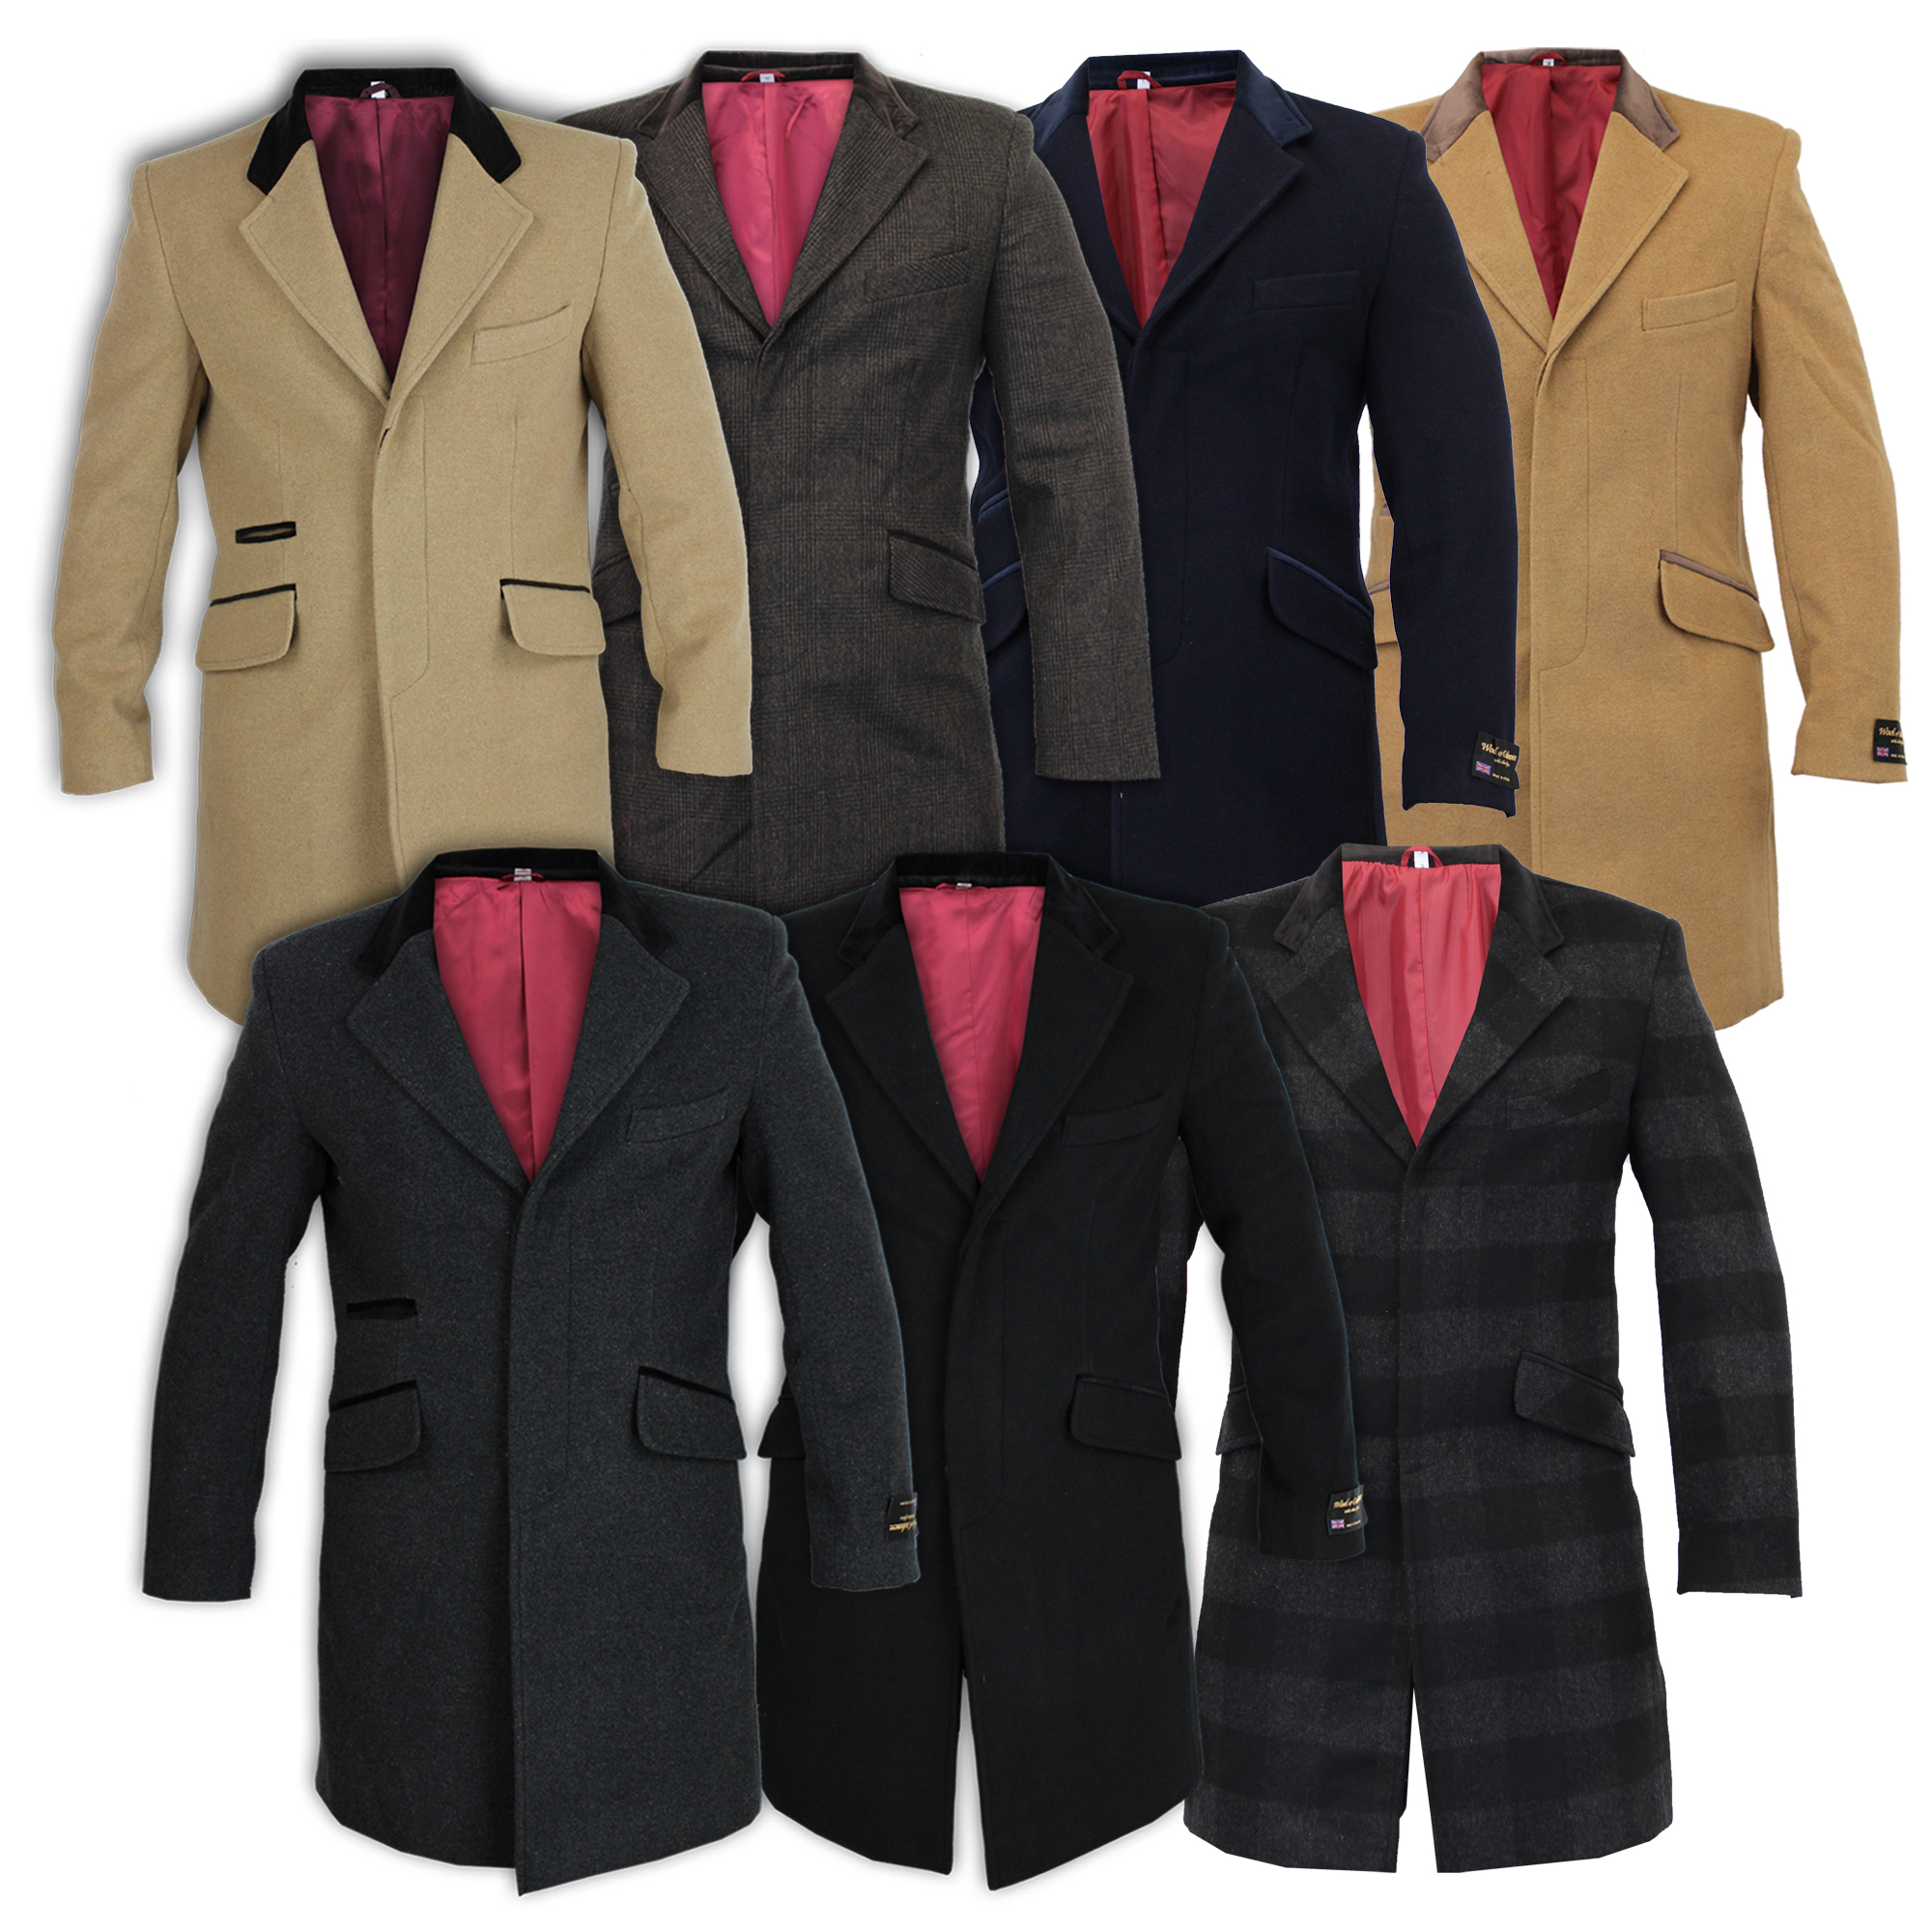 Mens Coat Wool Jacket Cashmere Casual Outerwear Overcoat ...